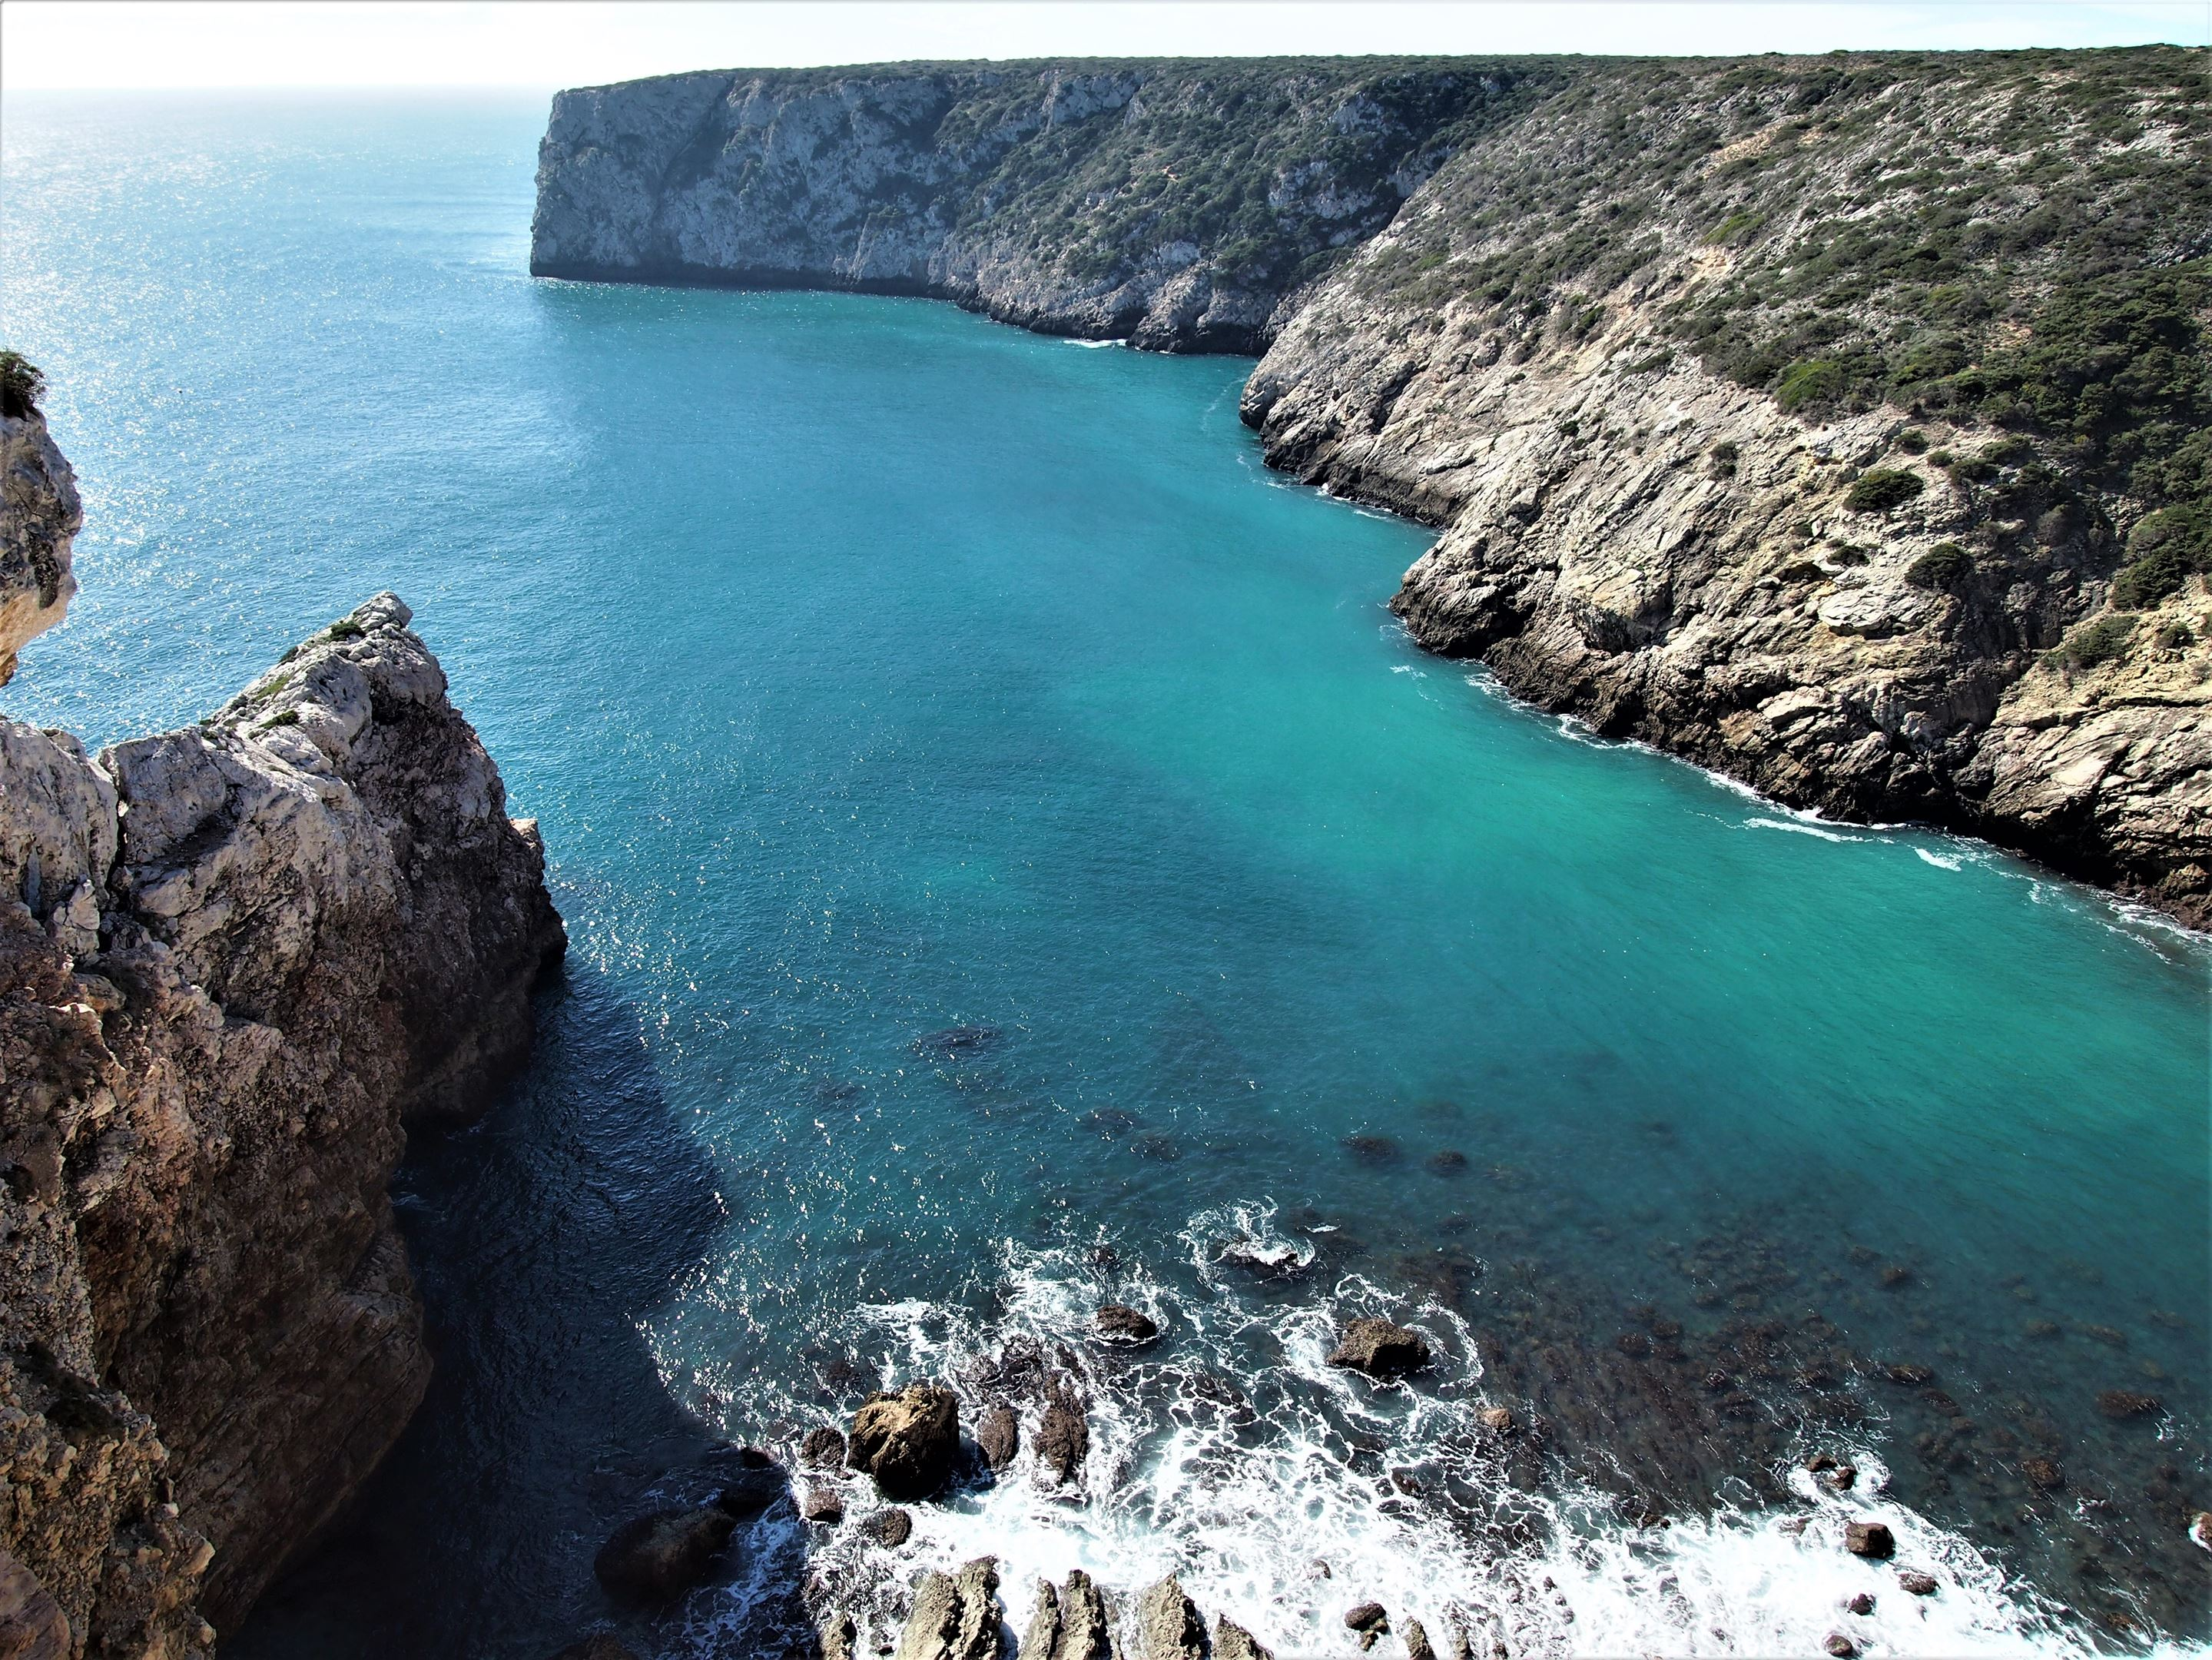 View from the cliffs at Fortaleza de Beliche, Sagres